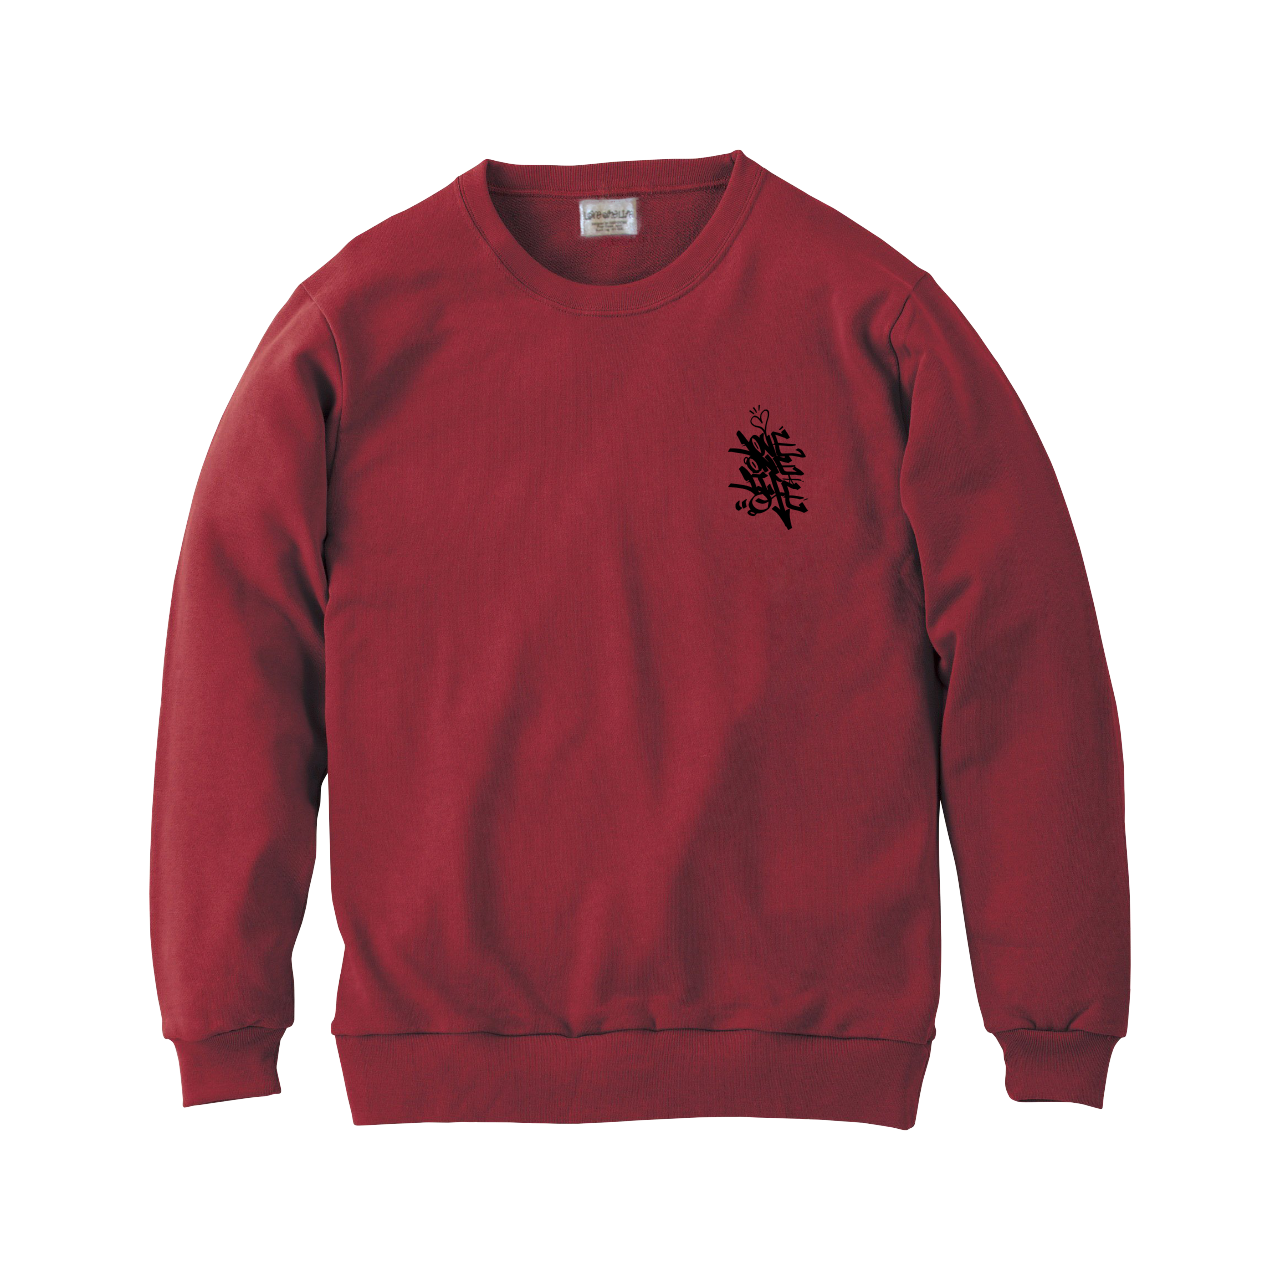 love one life sweater in burgundy